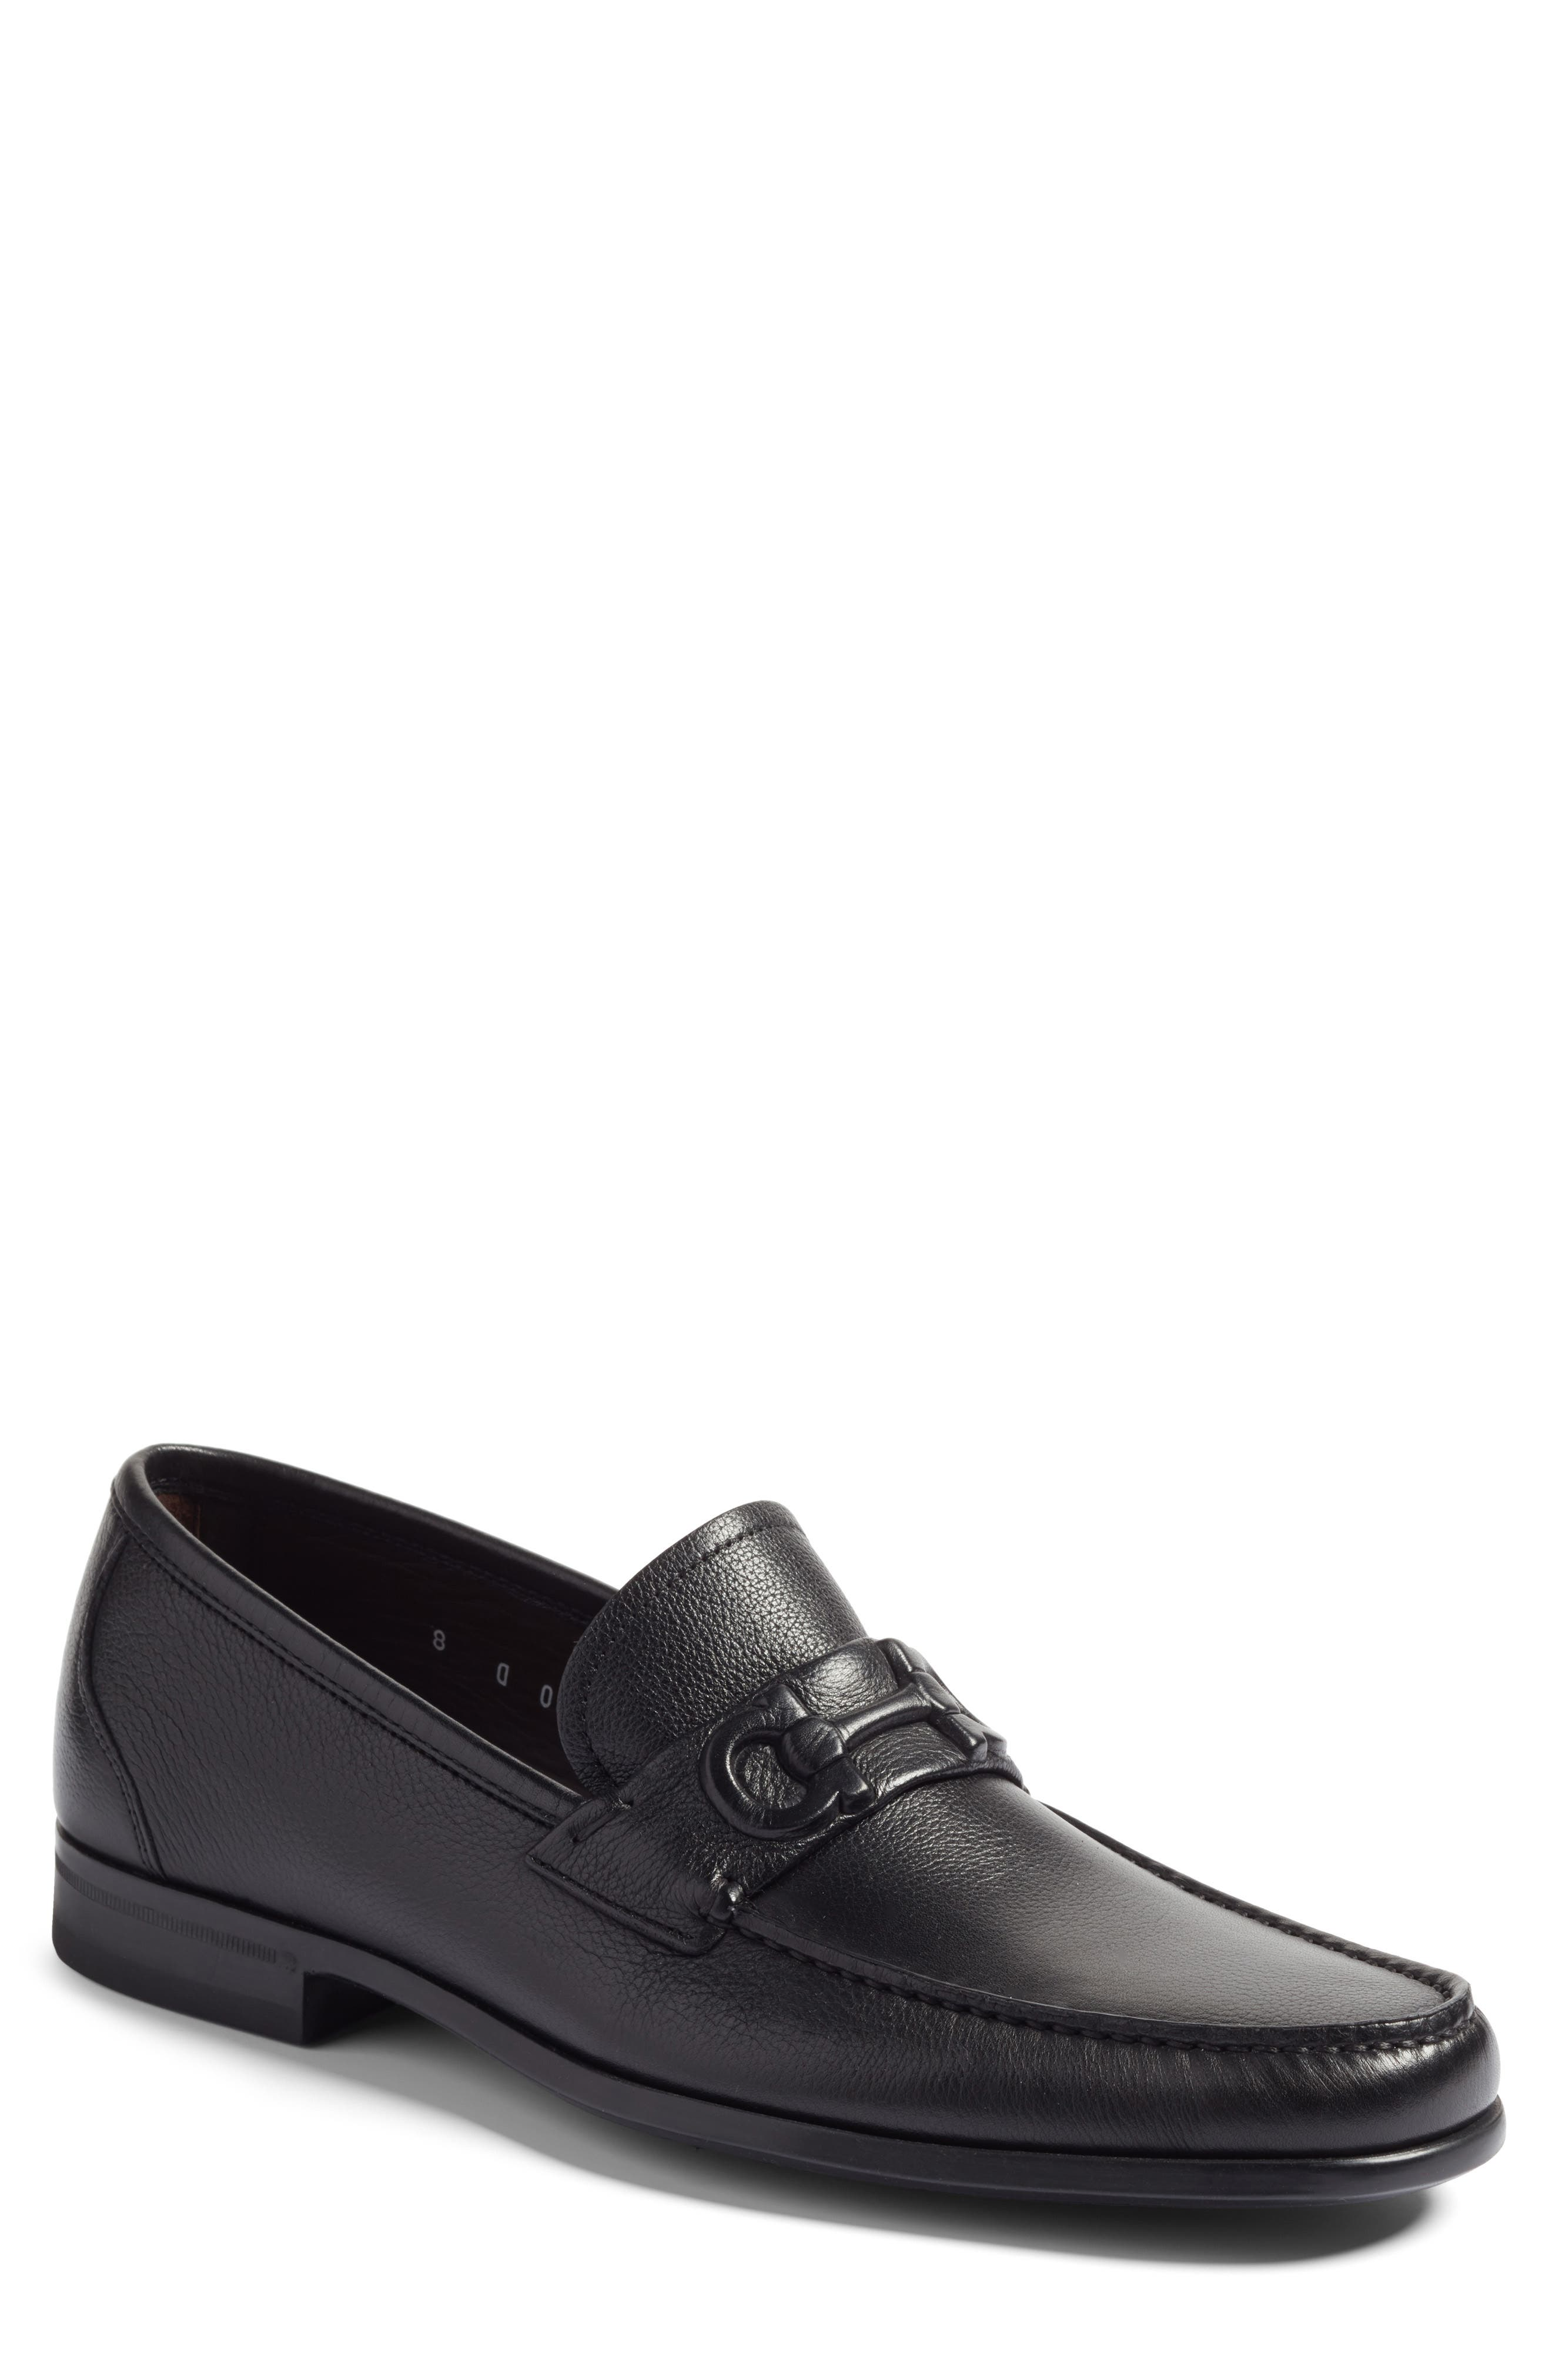 Bit Loafer,                             Main thumbnail 1, color,                             Nero Leather